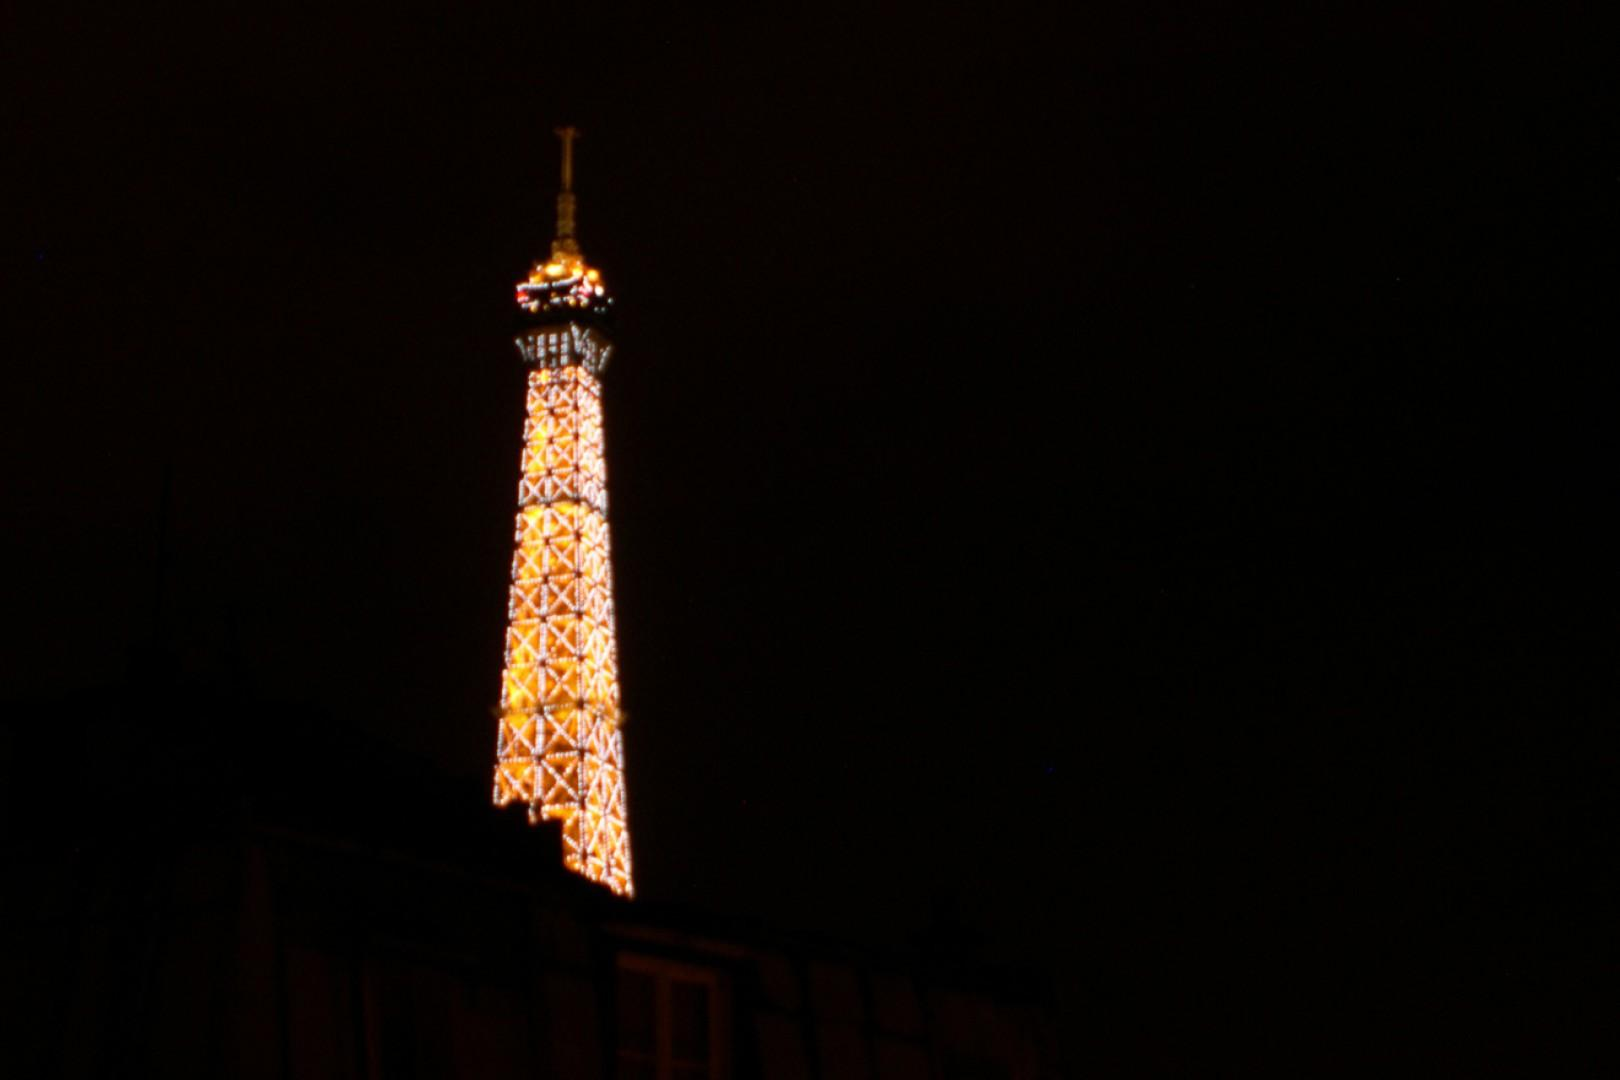 Catch the Eiffel Tower's golden glow at night from your apartment.